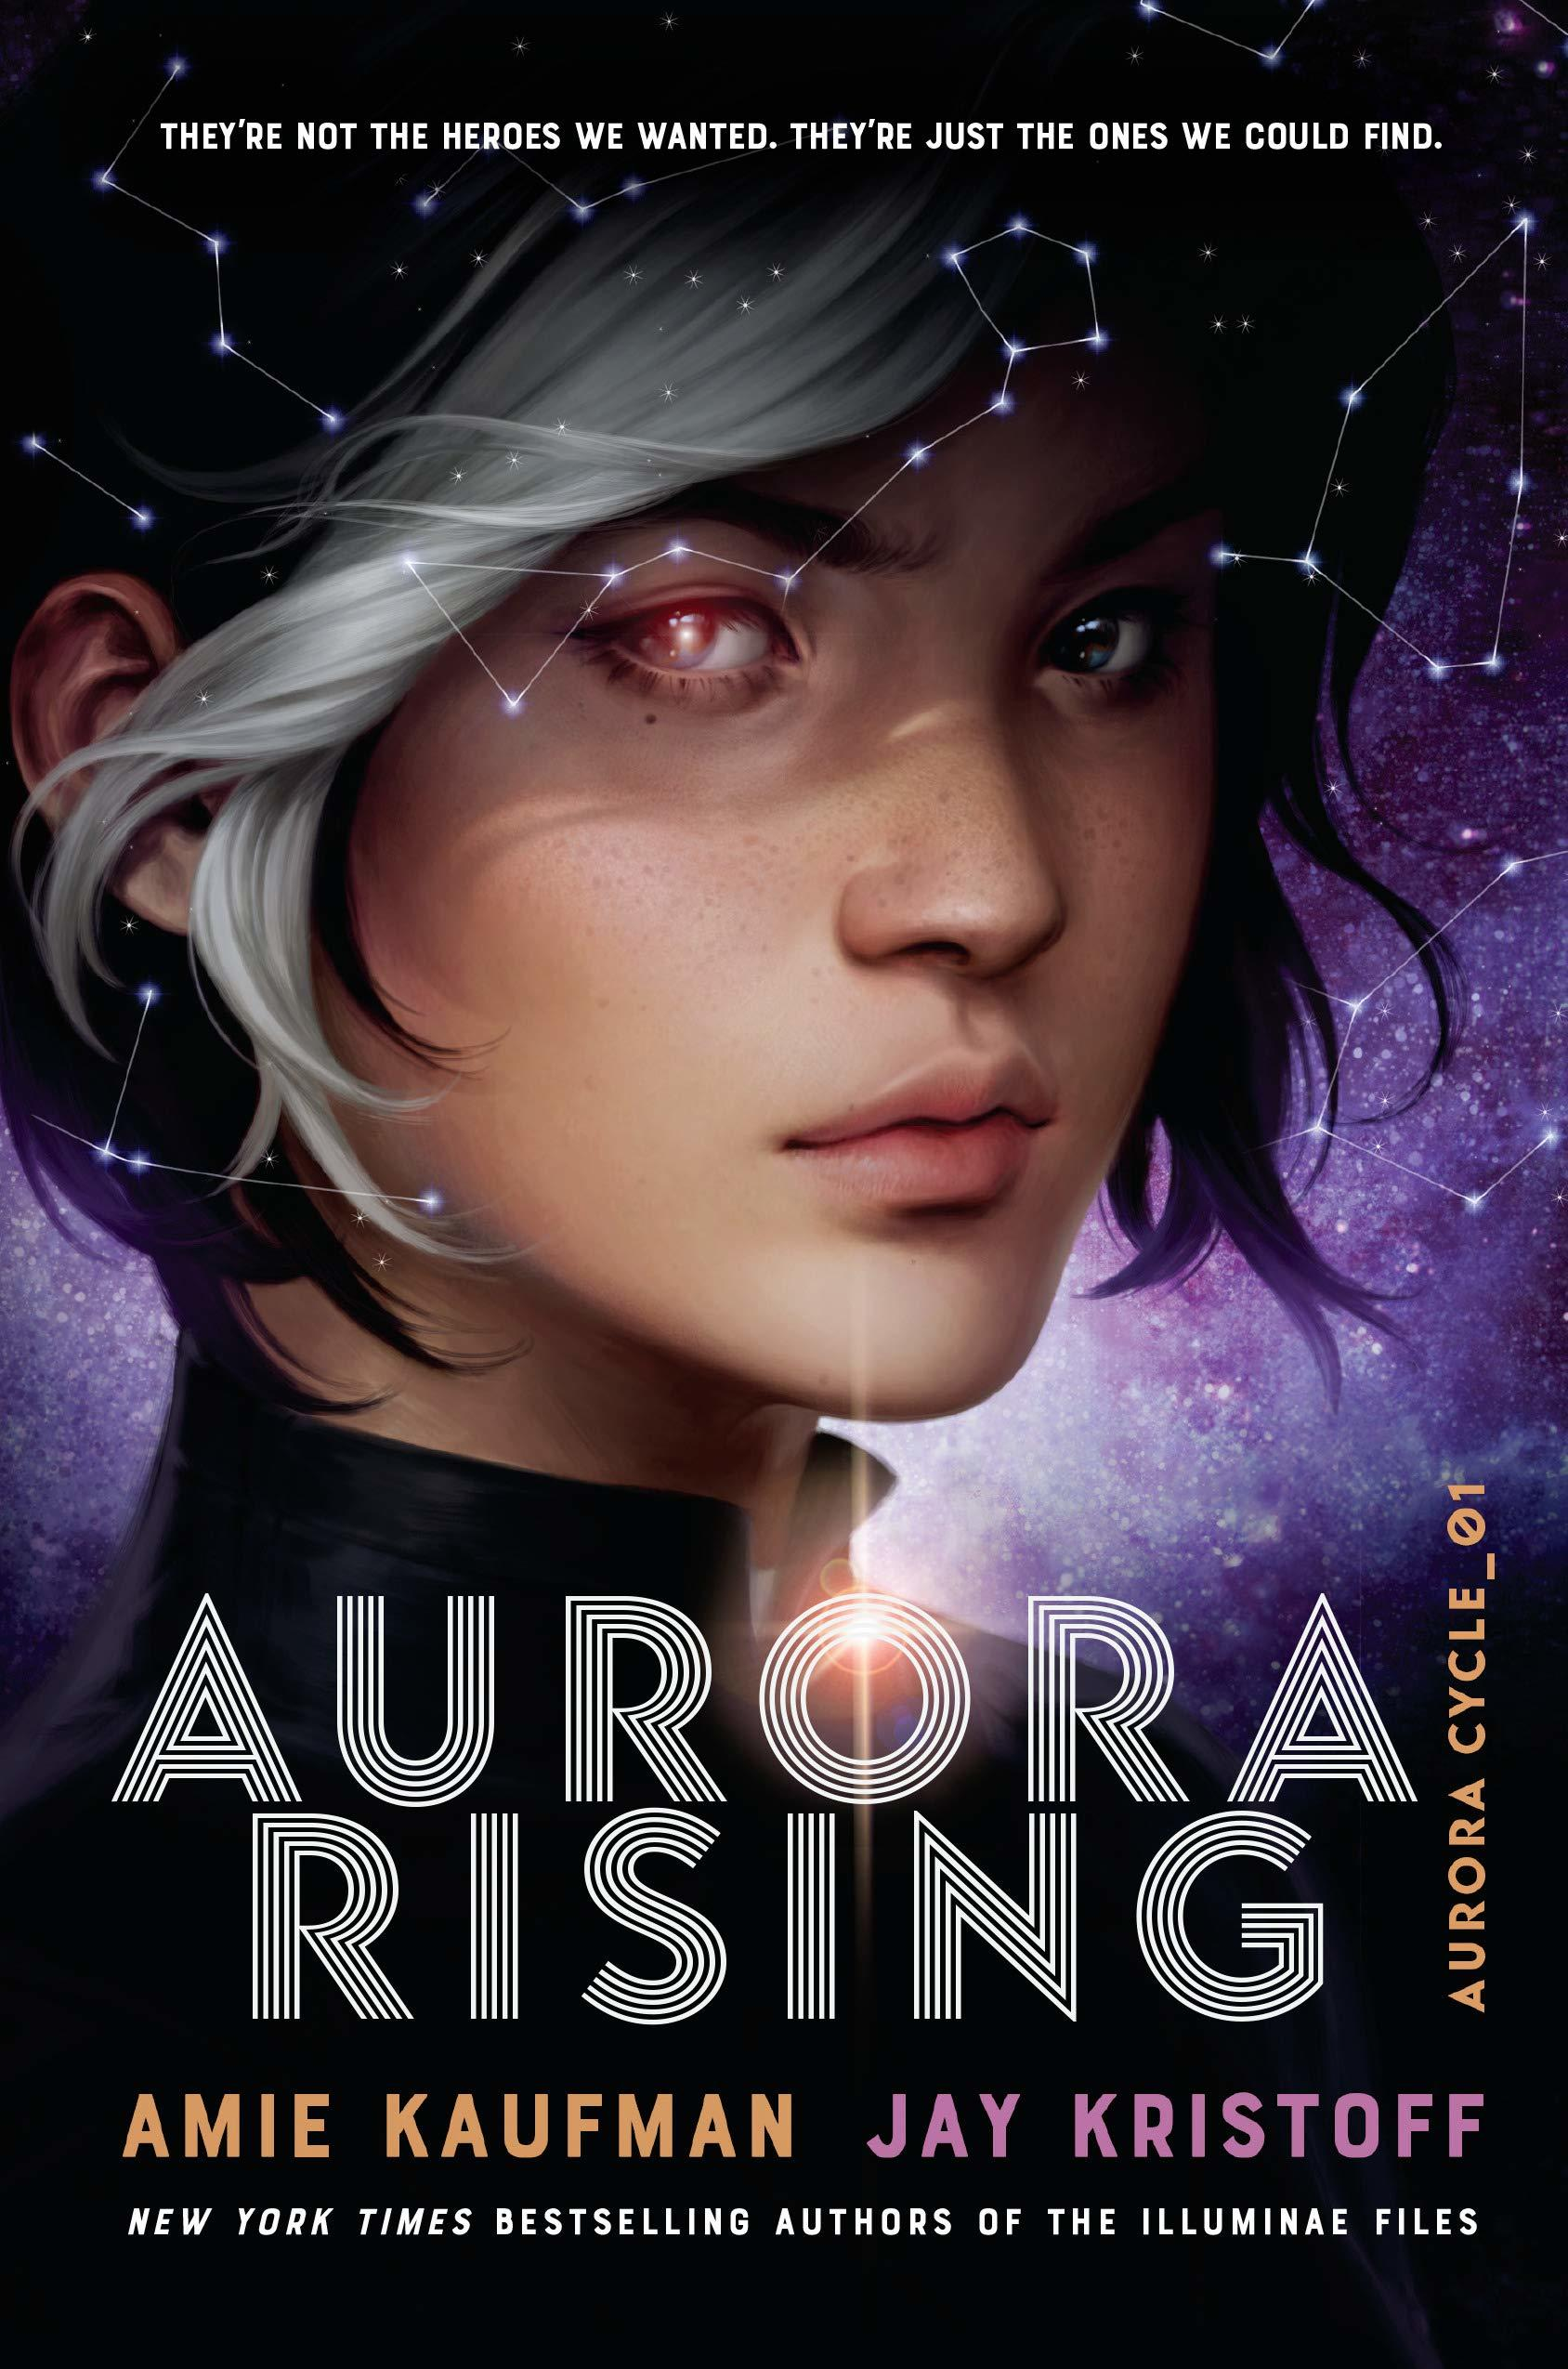 book cover image of Aurora Rising with close-up image of a girl's face with a shining eye and white streak in her black hair